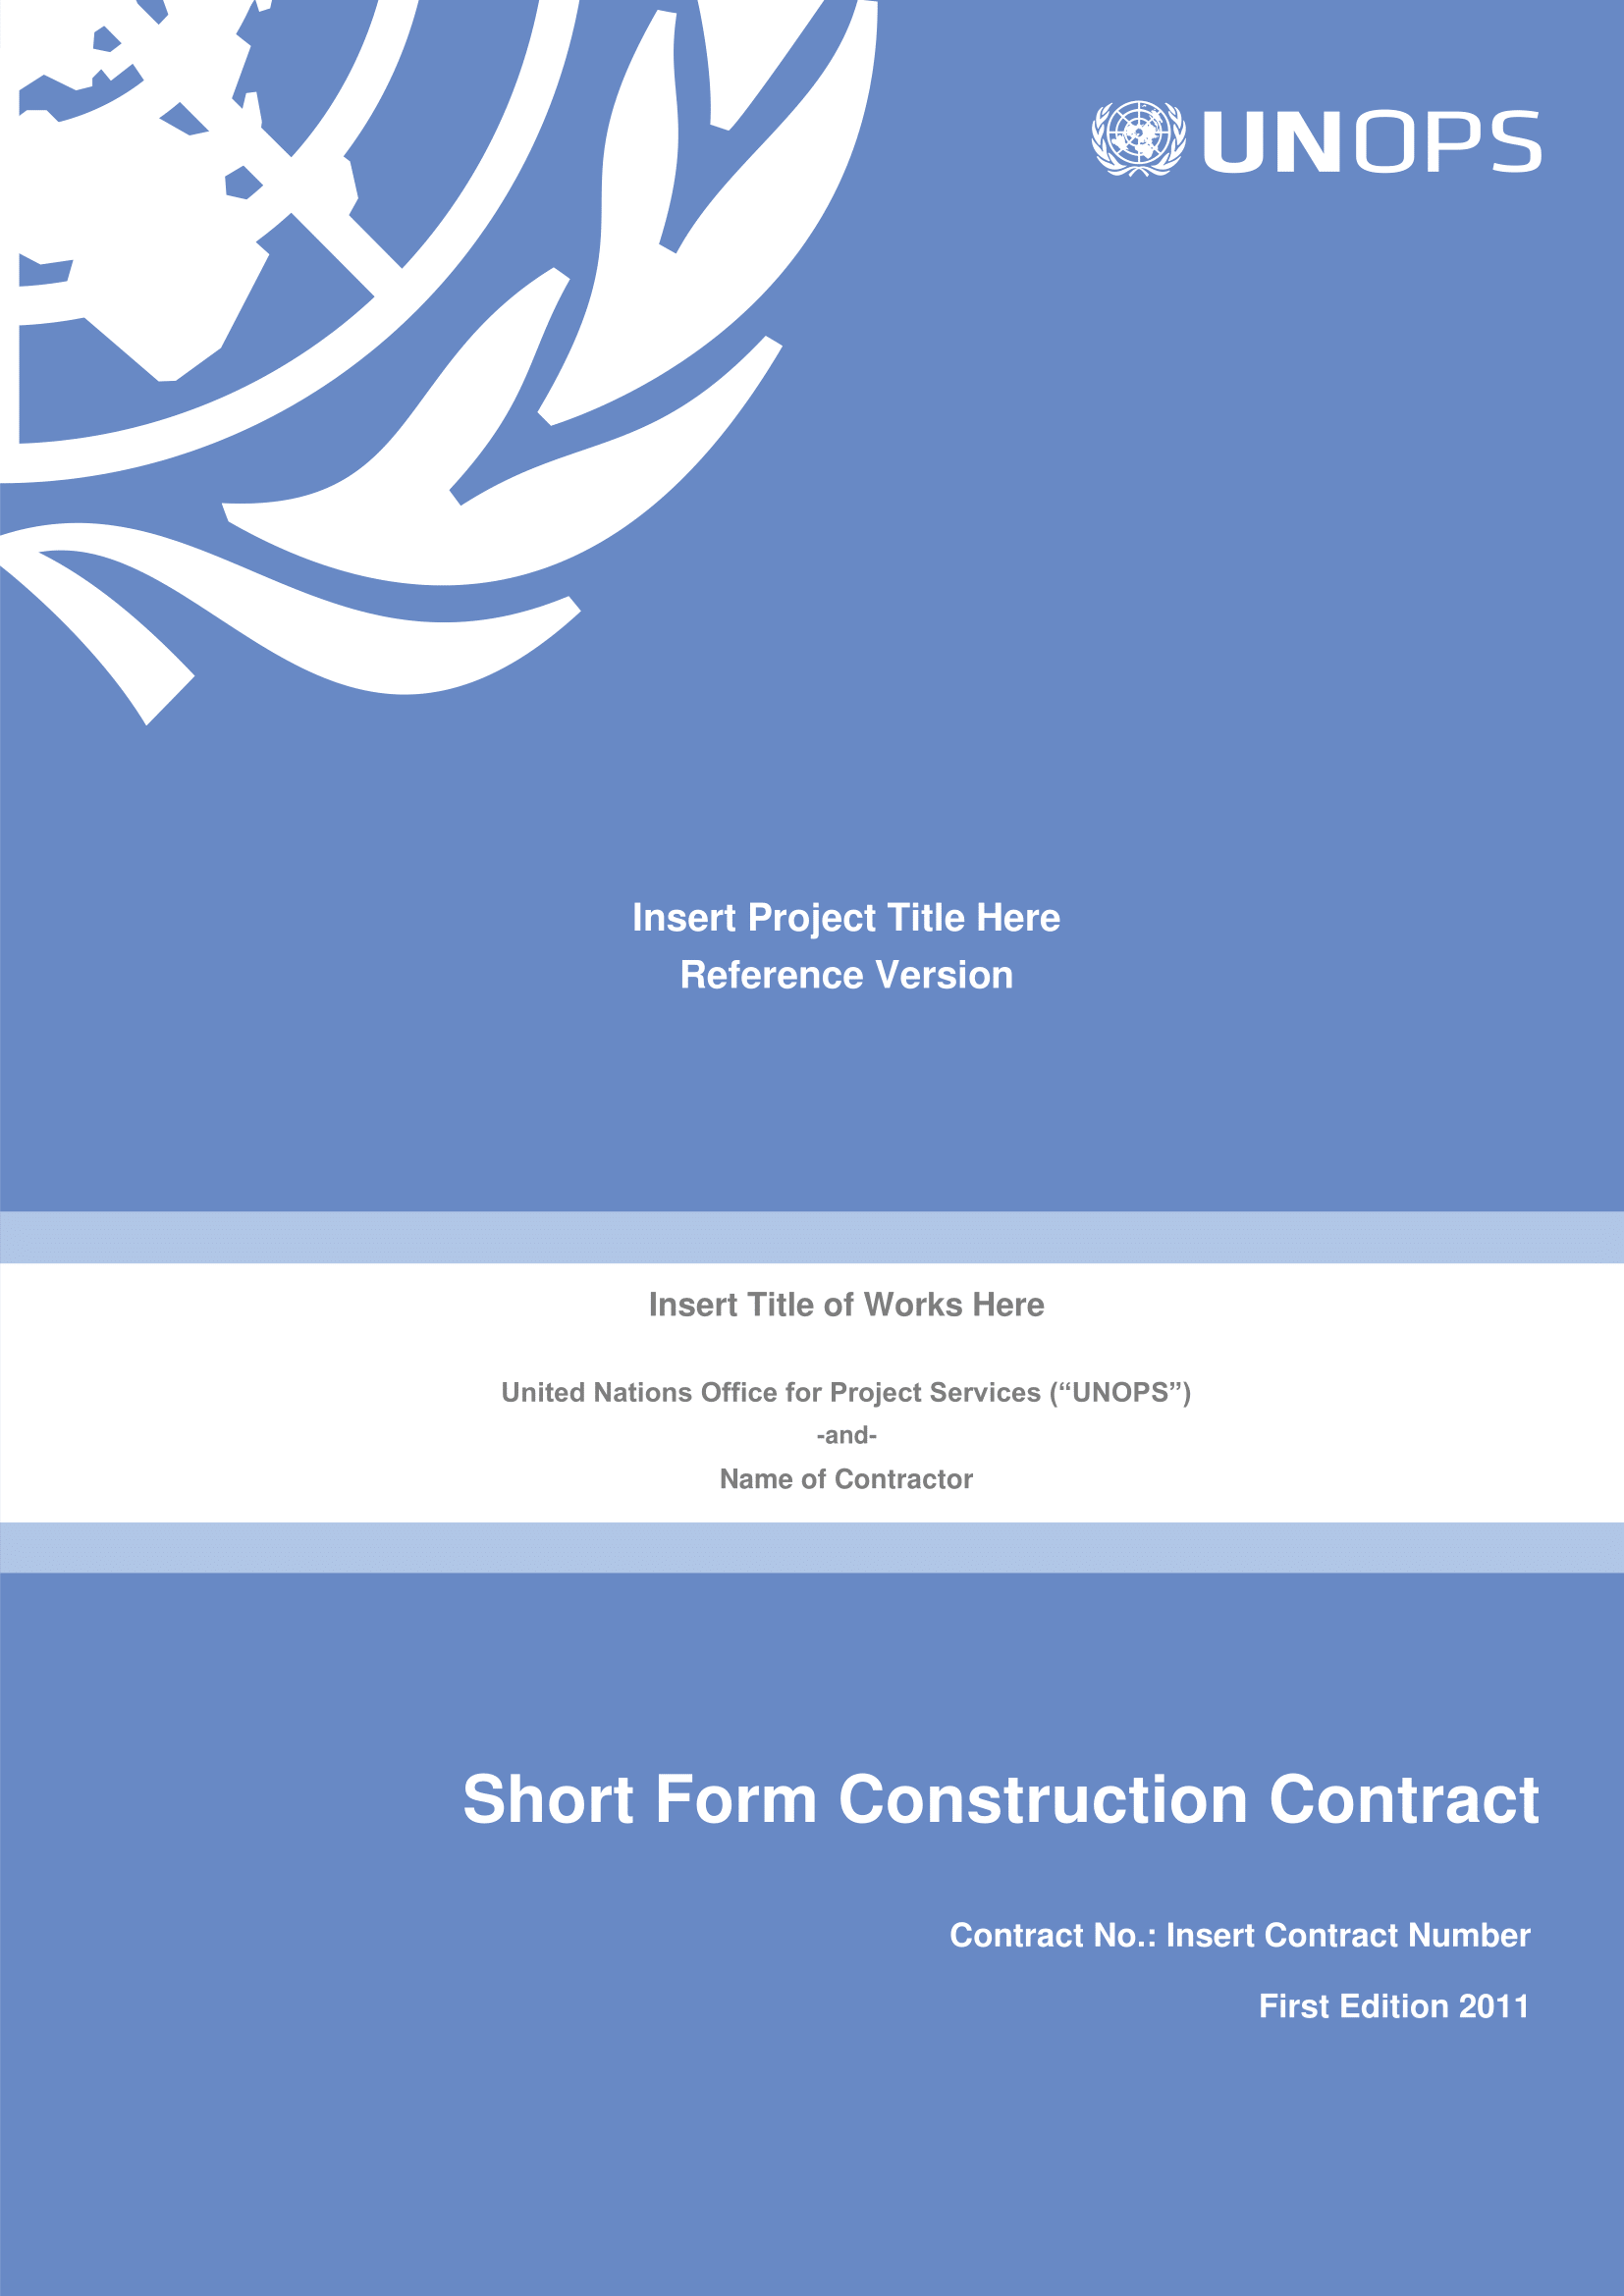 construction project contract 01